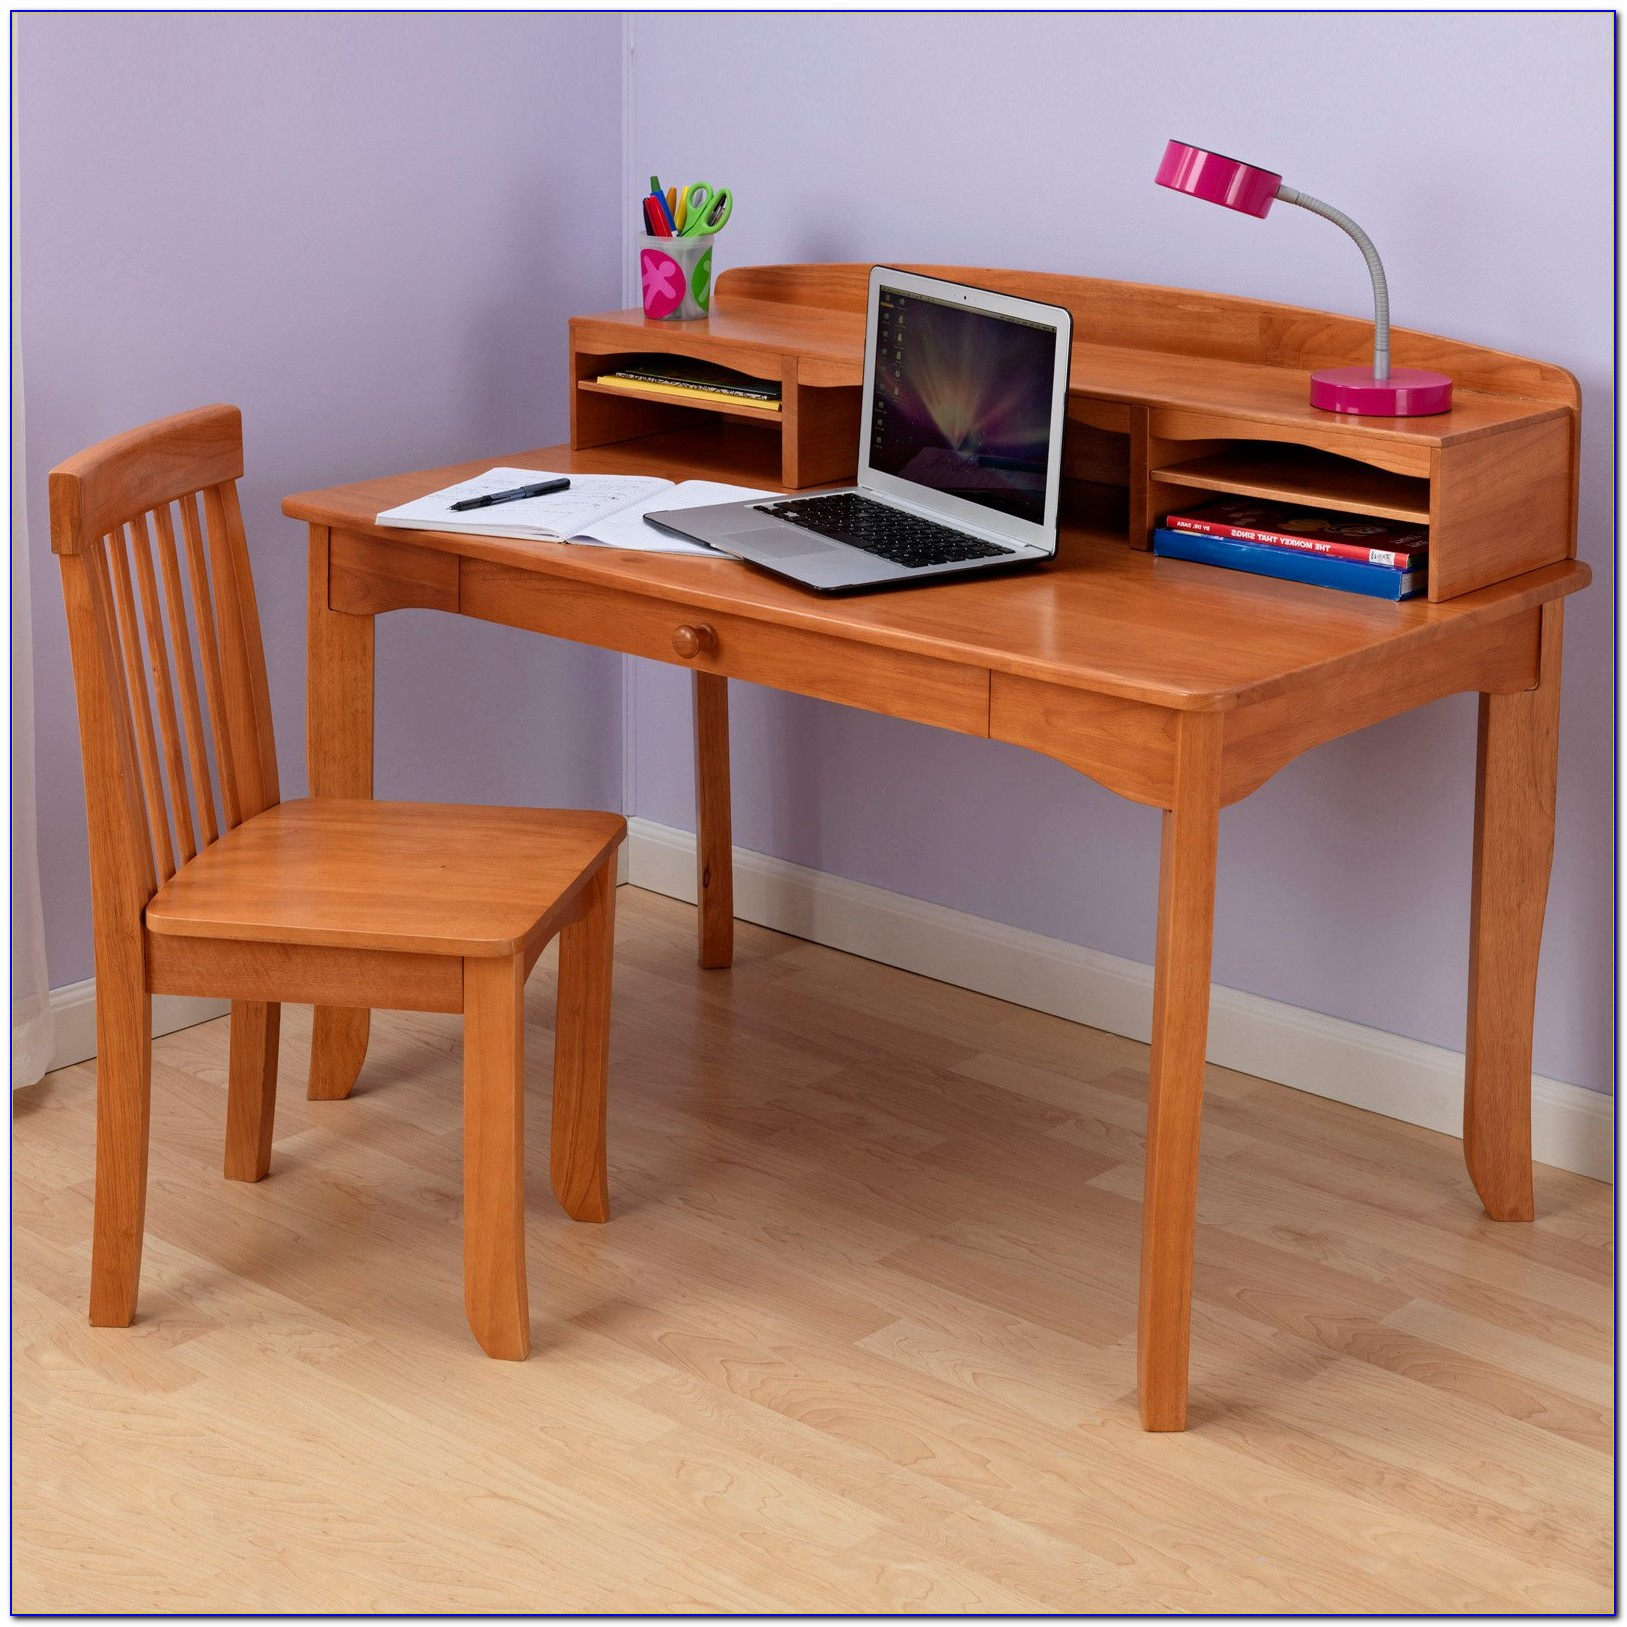 Bedroom Desk And Chair Set